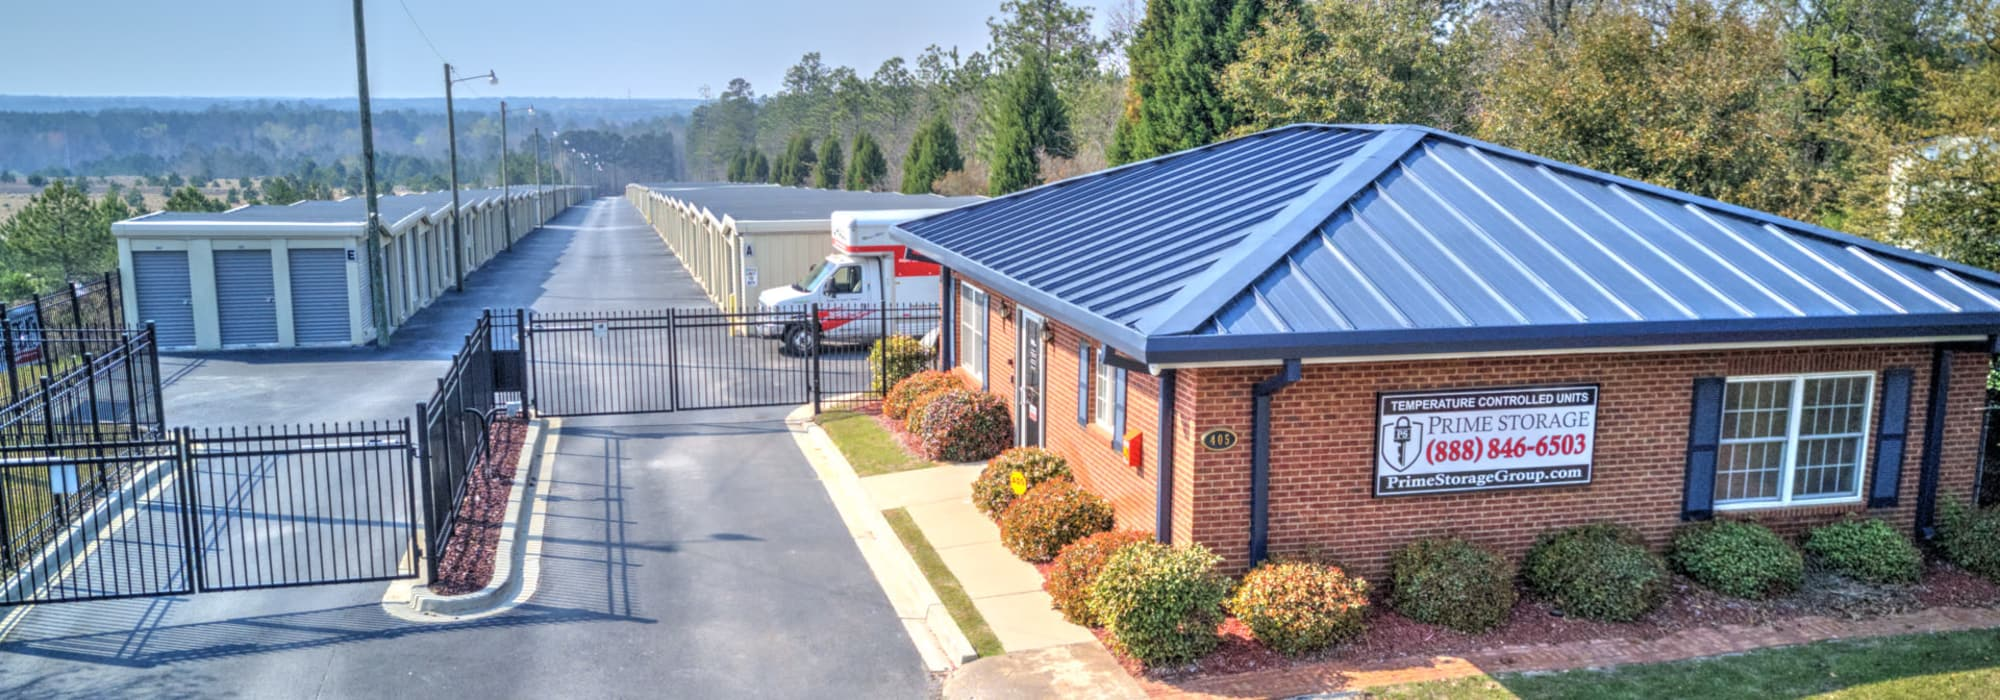 Prime Storage in Columbia, SC